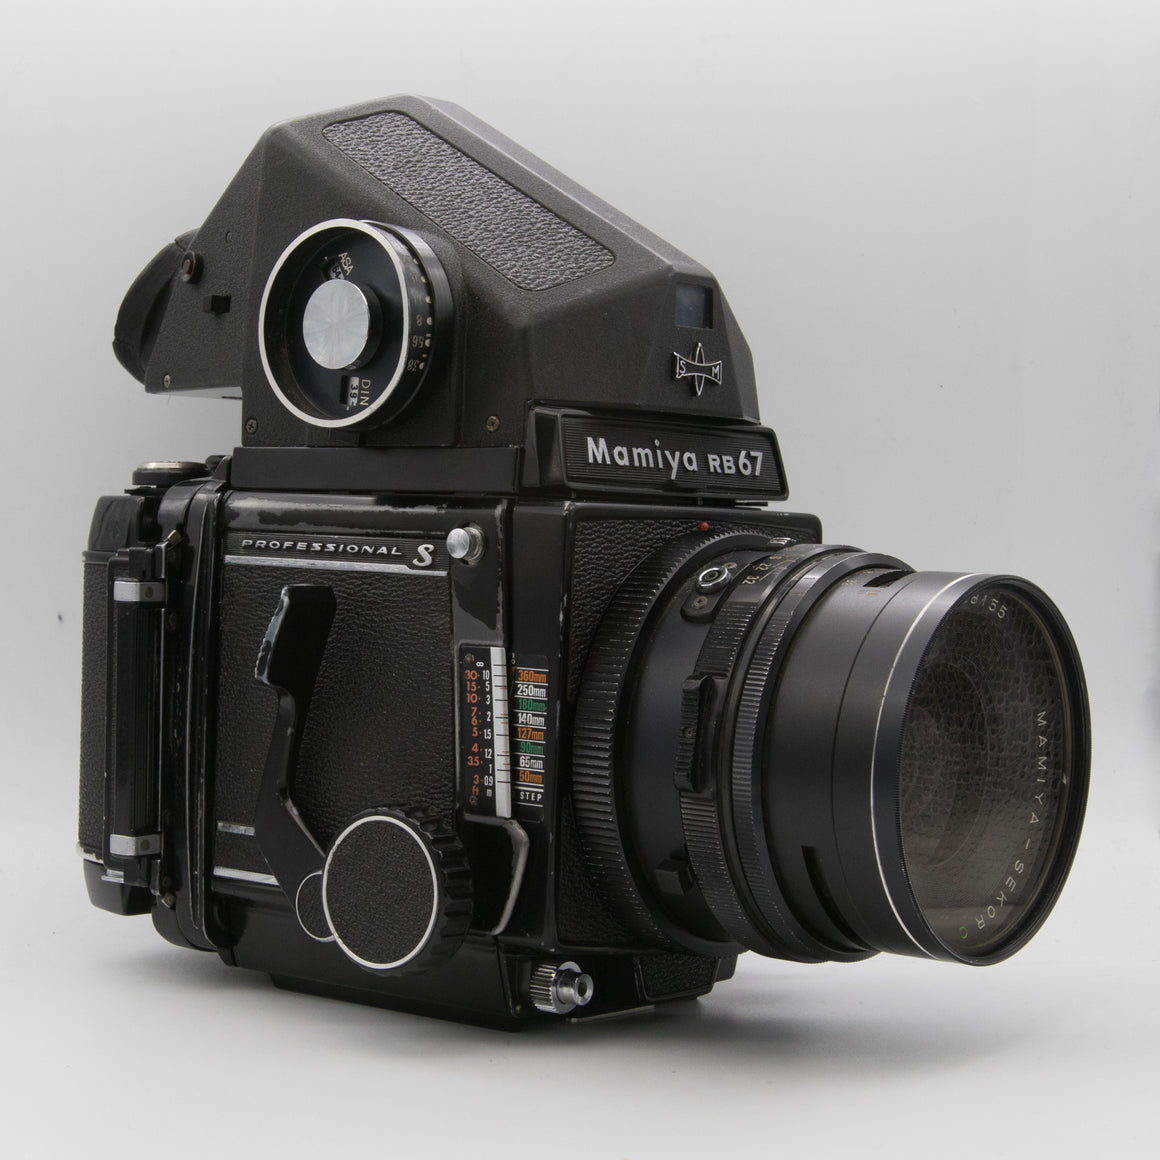 Mamiya RB67 Kit with Mamiya Seckor 90mm f/3.8 120 Medium Format Film Camera